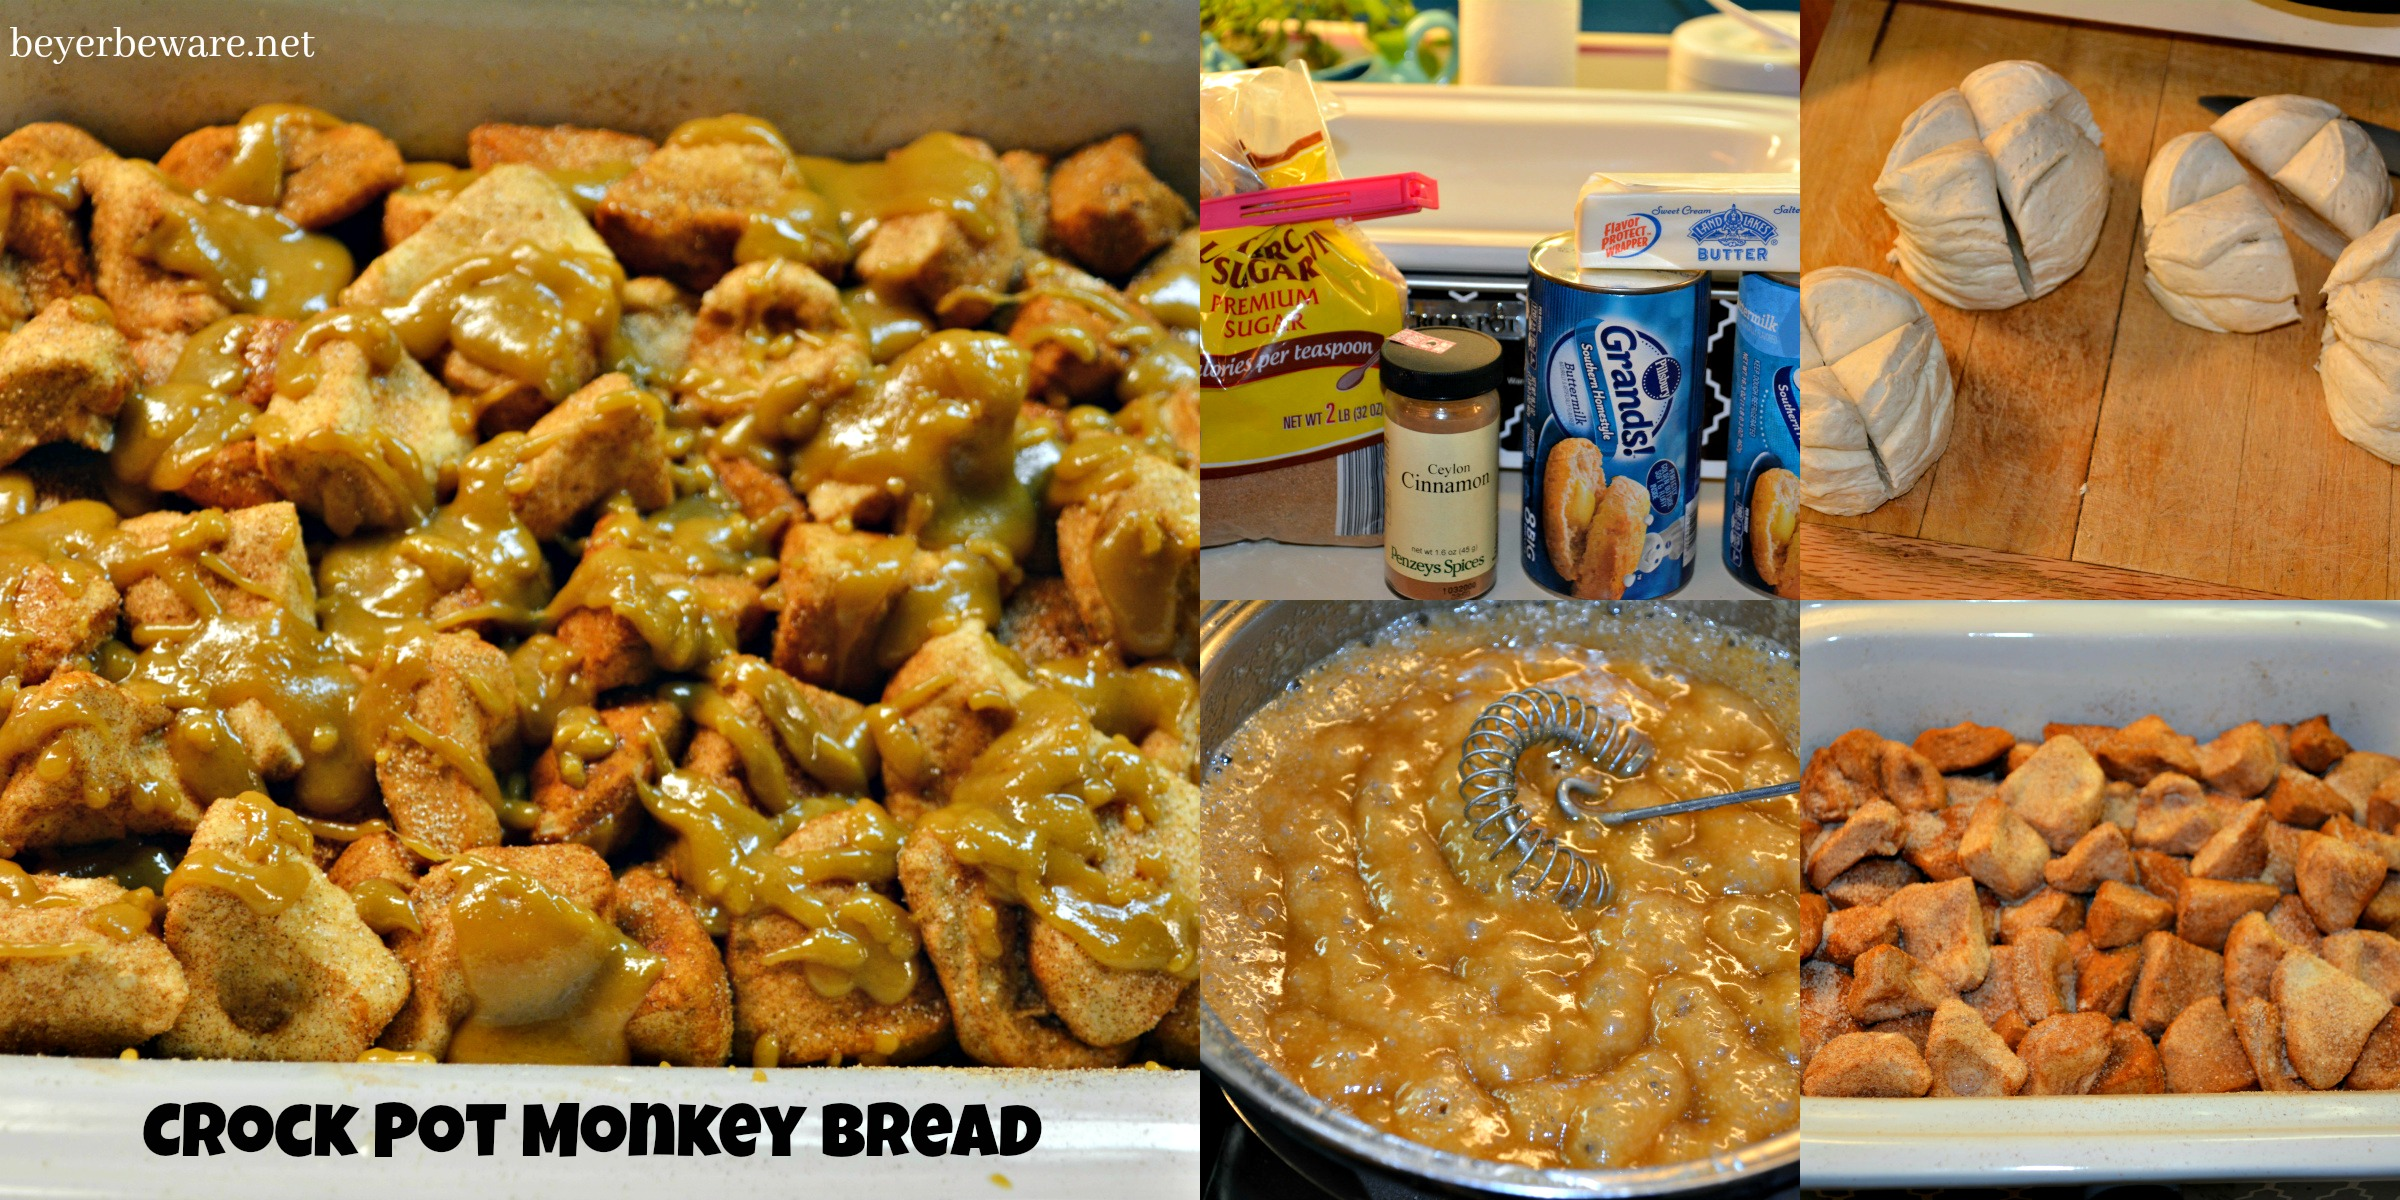 Five simple ingredients combined in a casserole crock pot and you are two hours away from this gooey crock pot monkey bread.